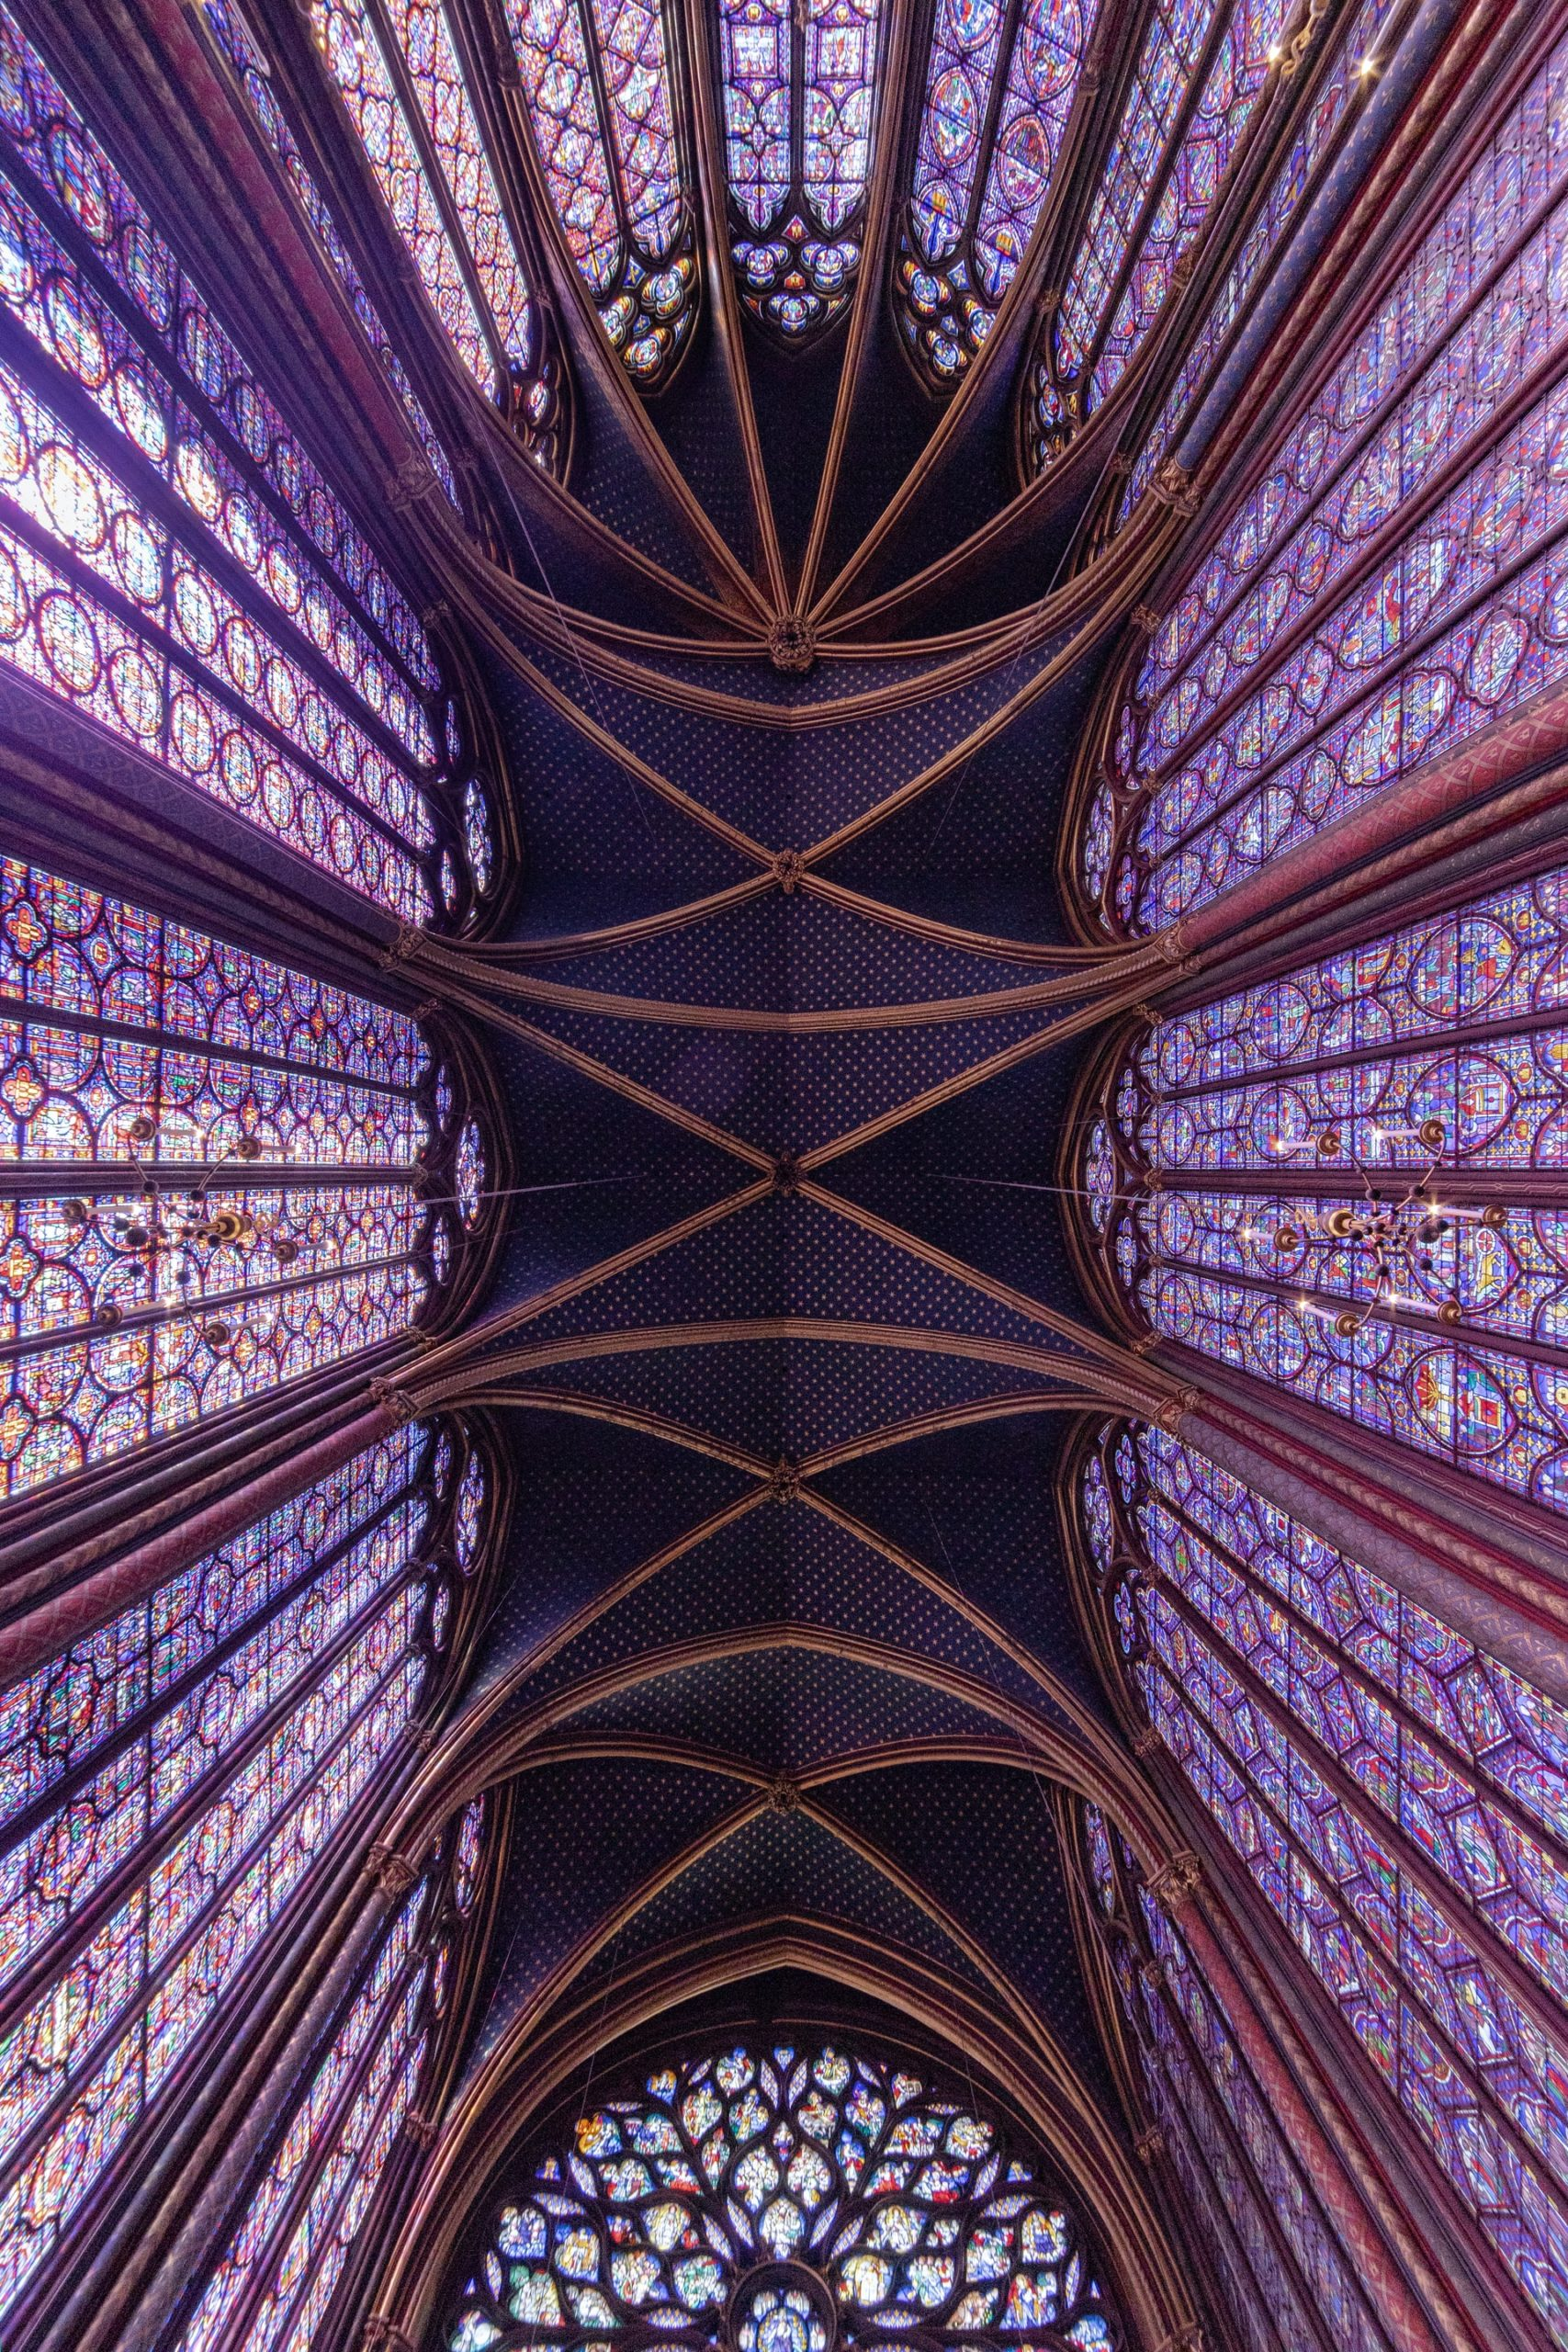 Saint Chapelle, Paris. Source: Mitya Ivanov, Unsplash.